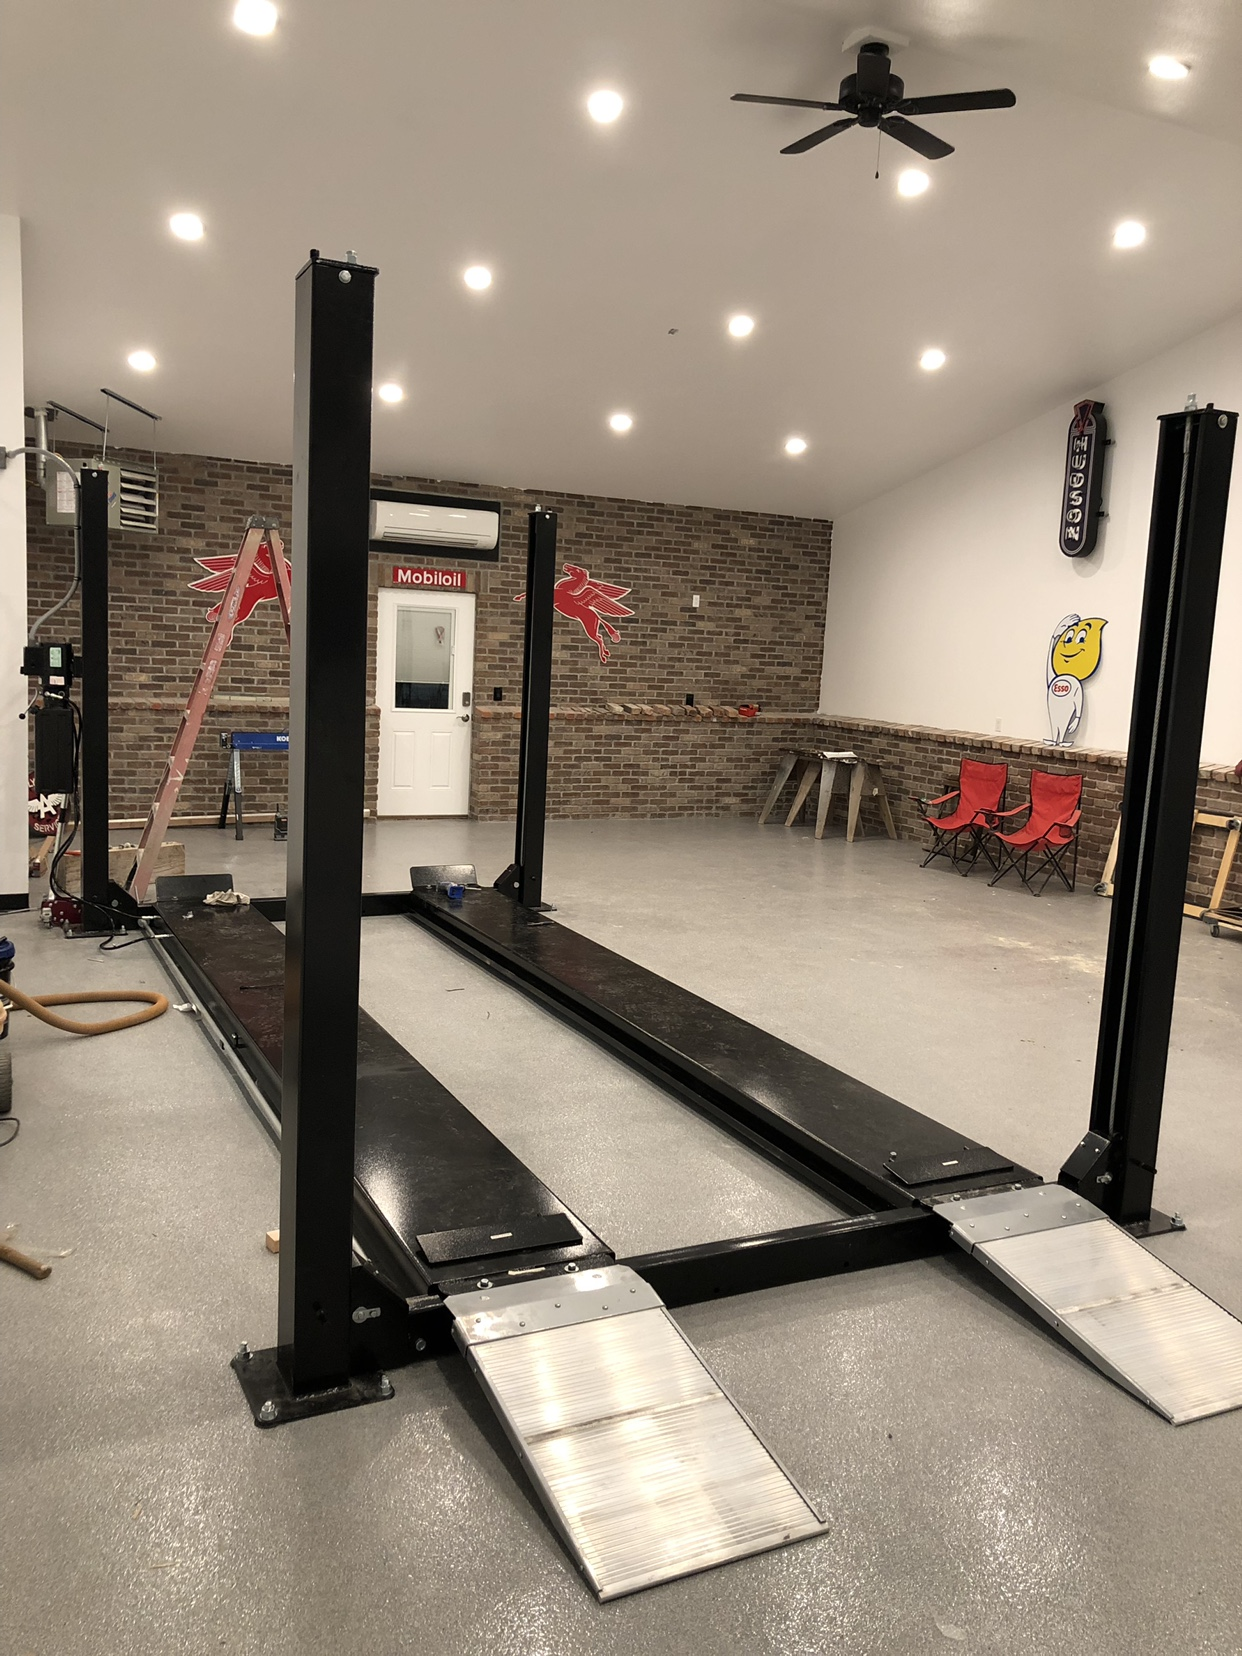 Garage gym man cave transforming your basement into a man cave